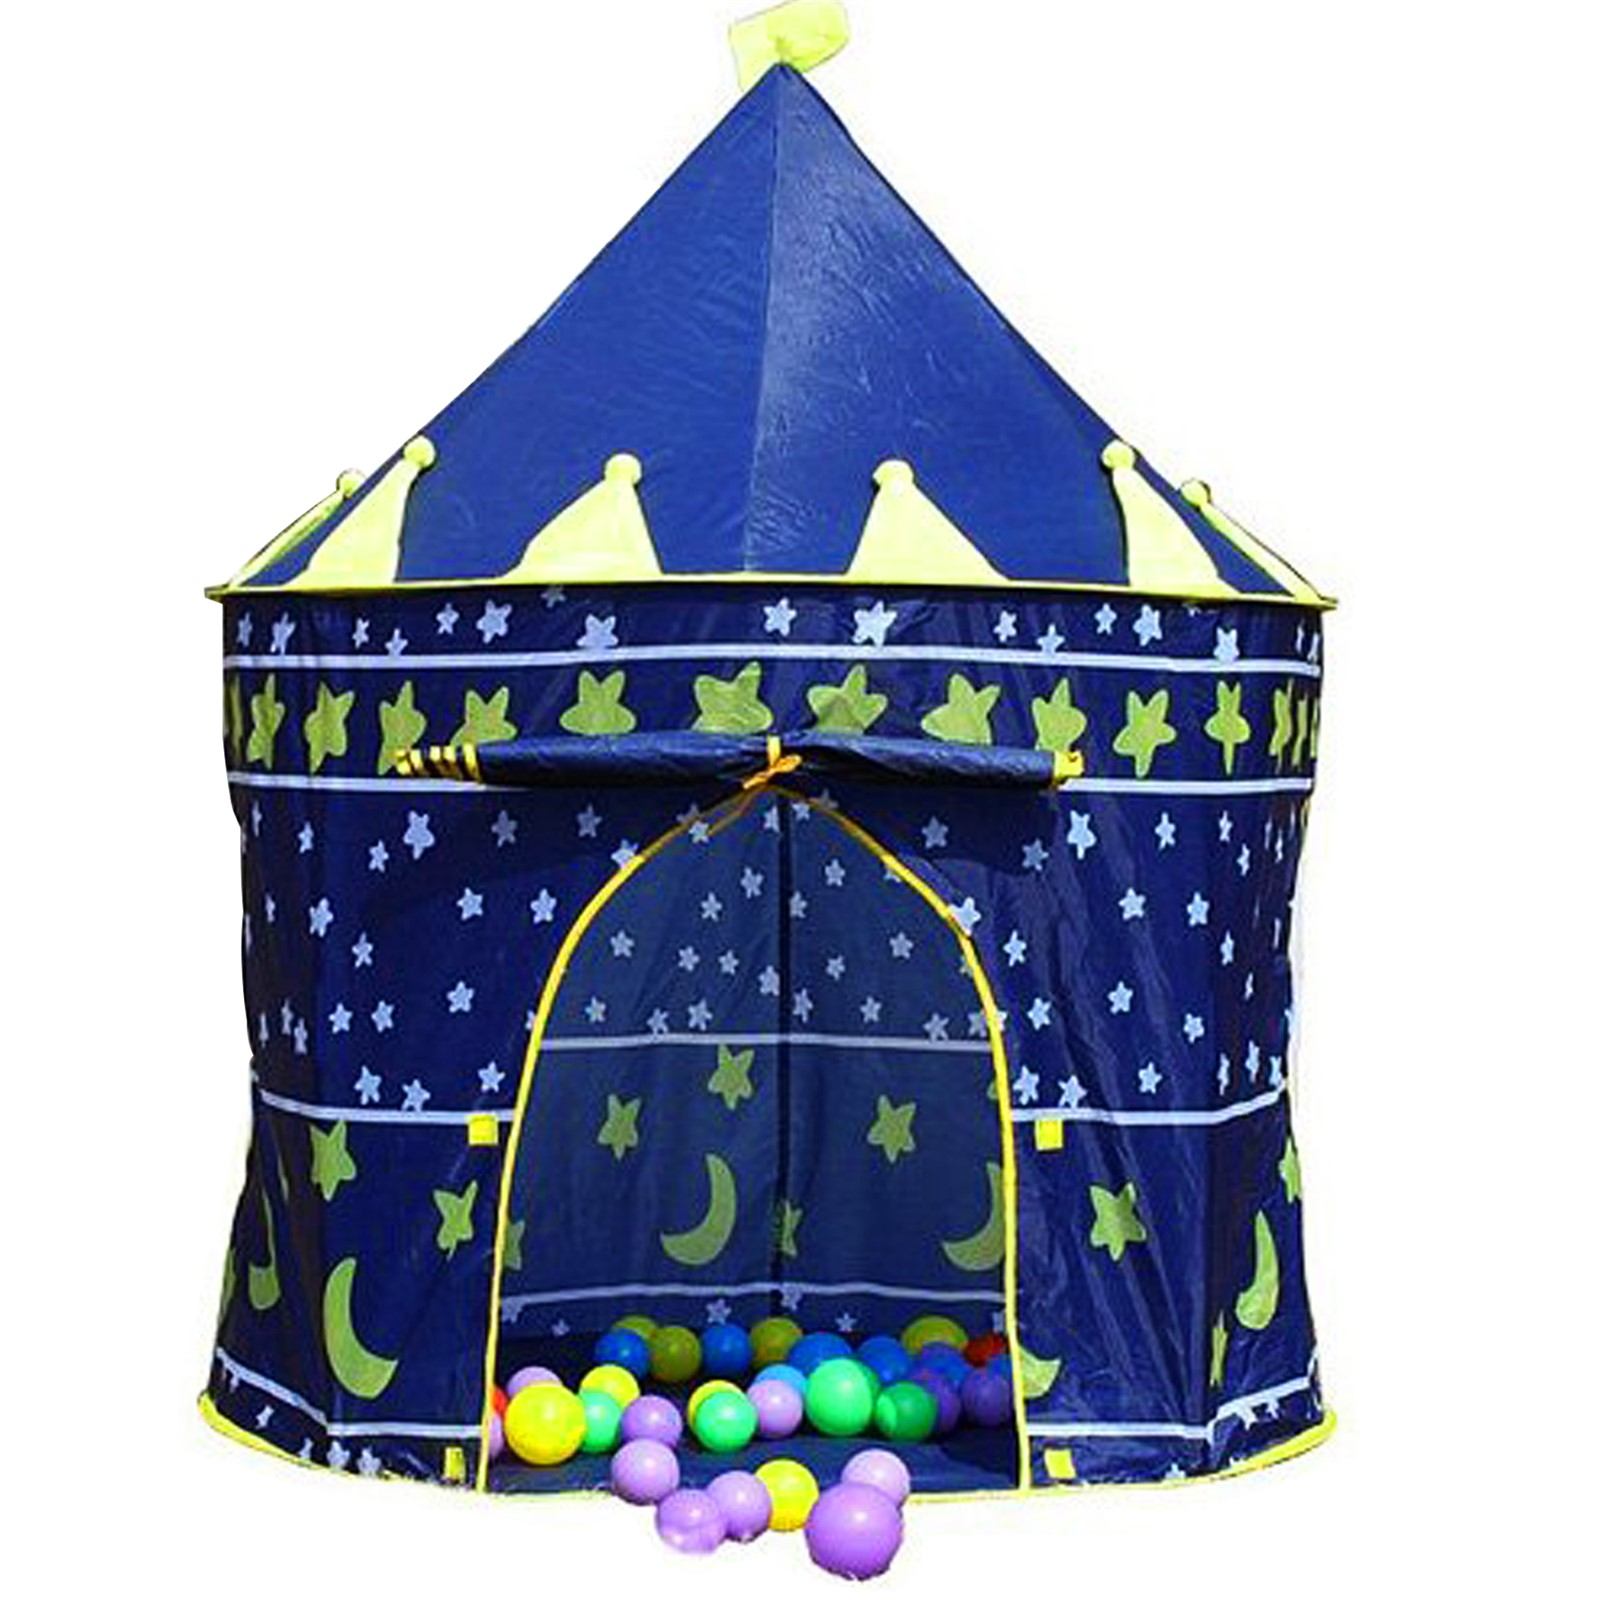 CHILDRENS-KIDS-POP-UP-CASTLE-PLAYHOUSE-GIRLS-PRINCESS-  sc 1 st  eBay & CHILDRENS KIDS POP UP CASTLE PLAYHOUSE GIRLS PRINCESS / BOYS ...